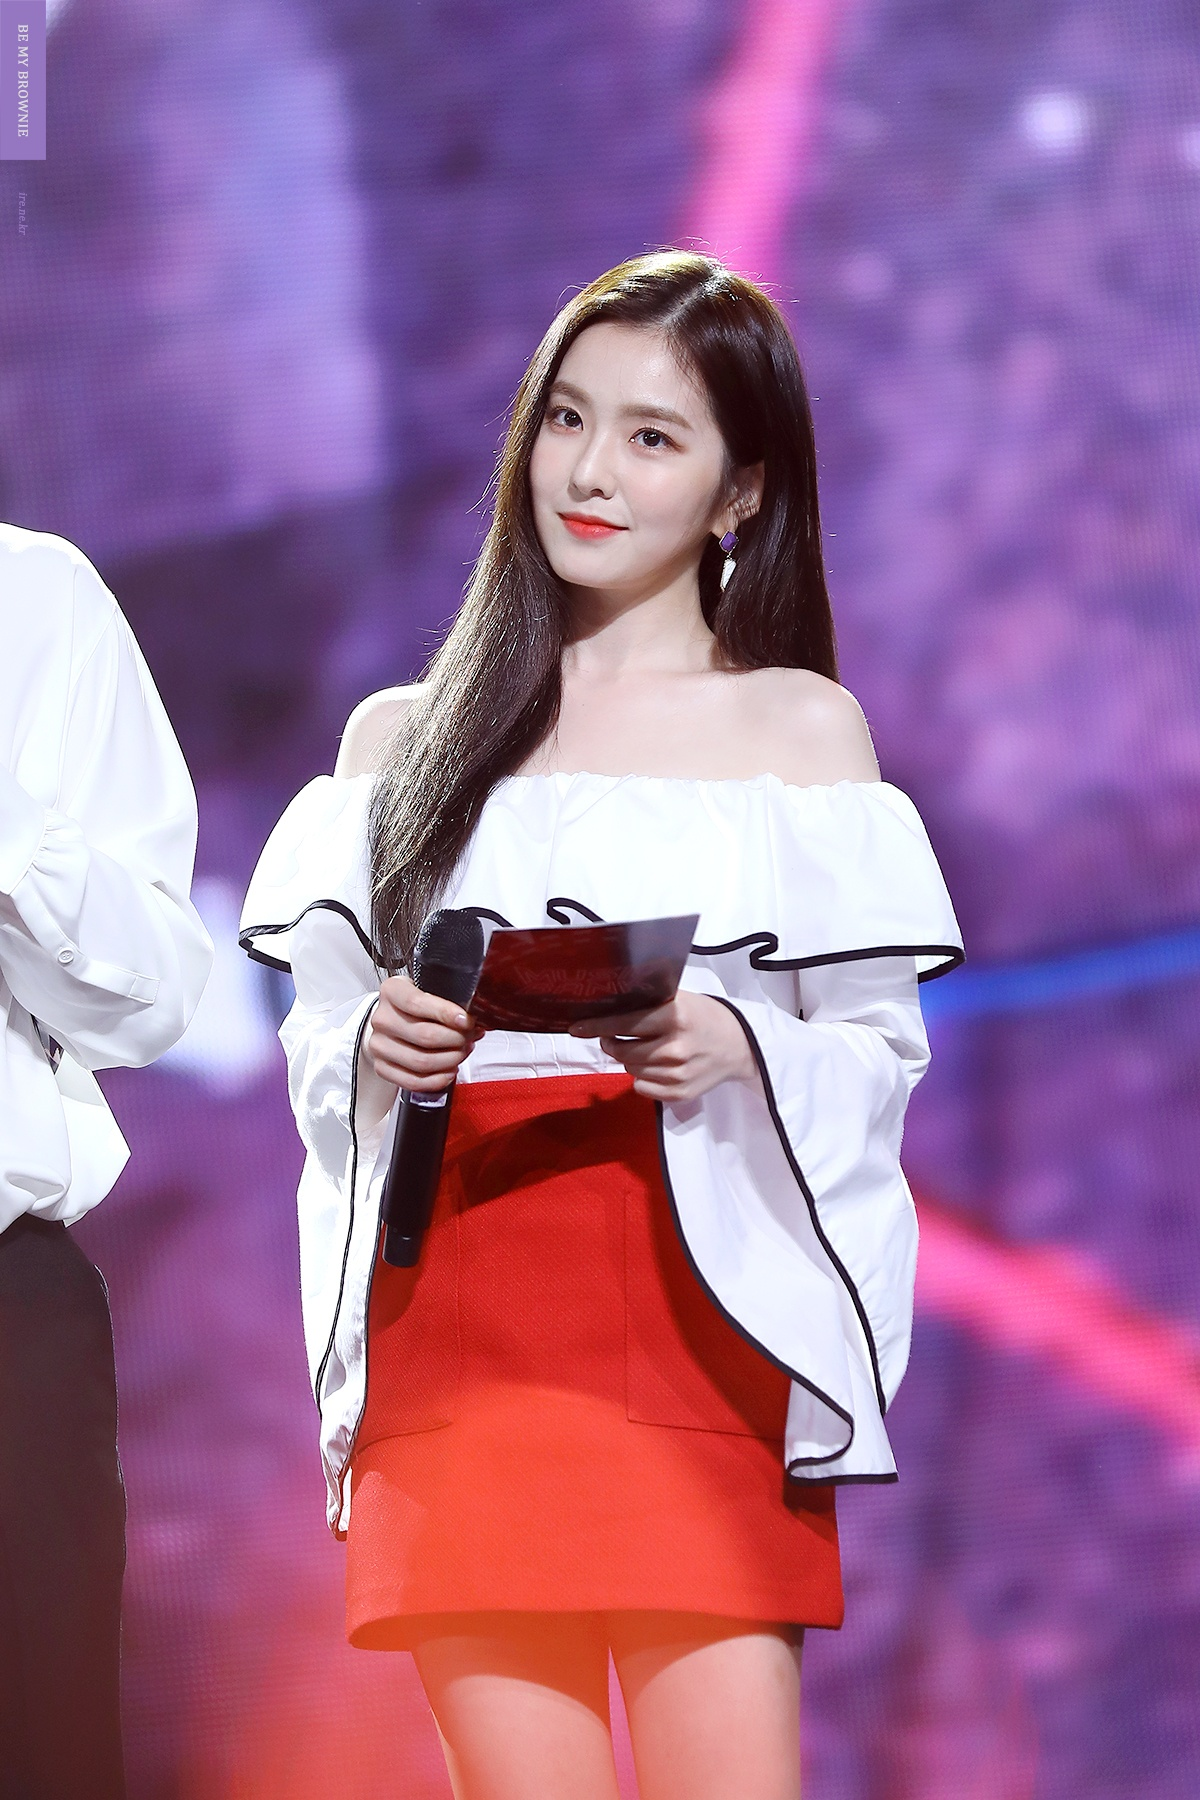 13 Hd Photos Of Irene In This Shockingly Sexy Dress Koreaboo